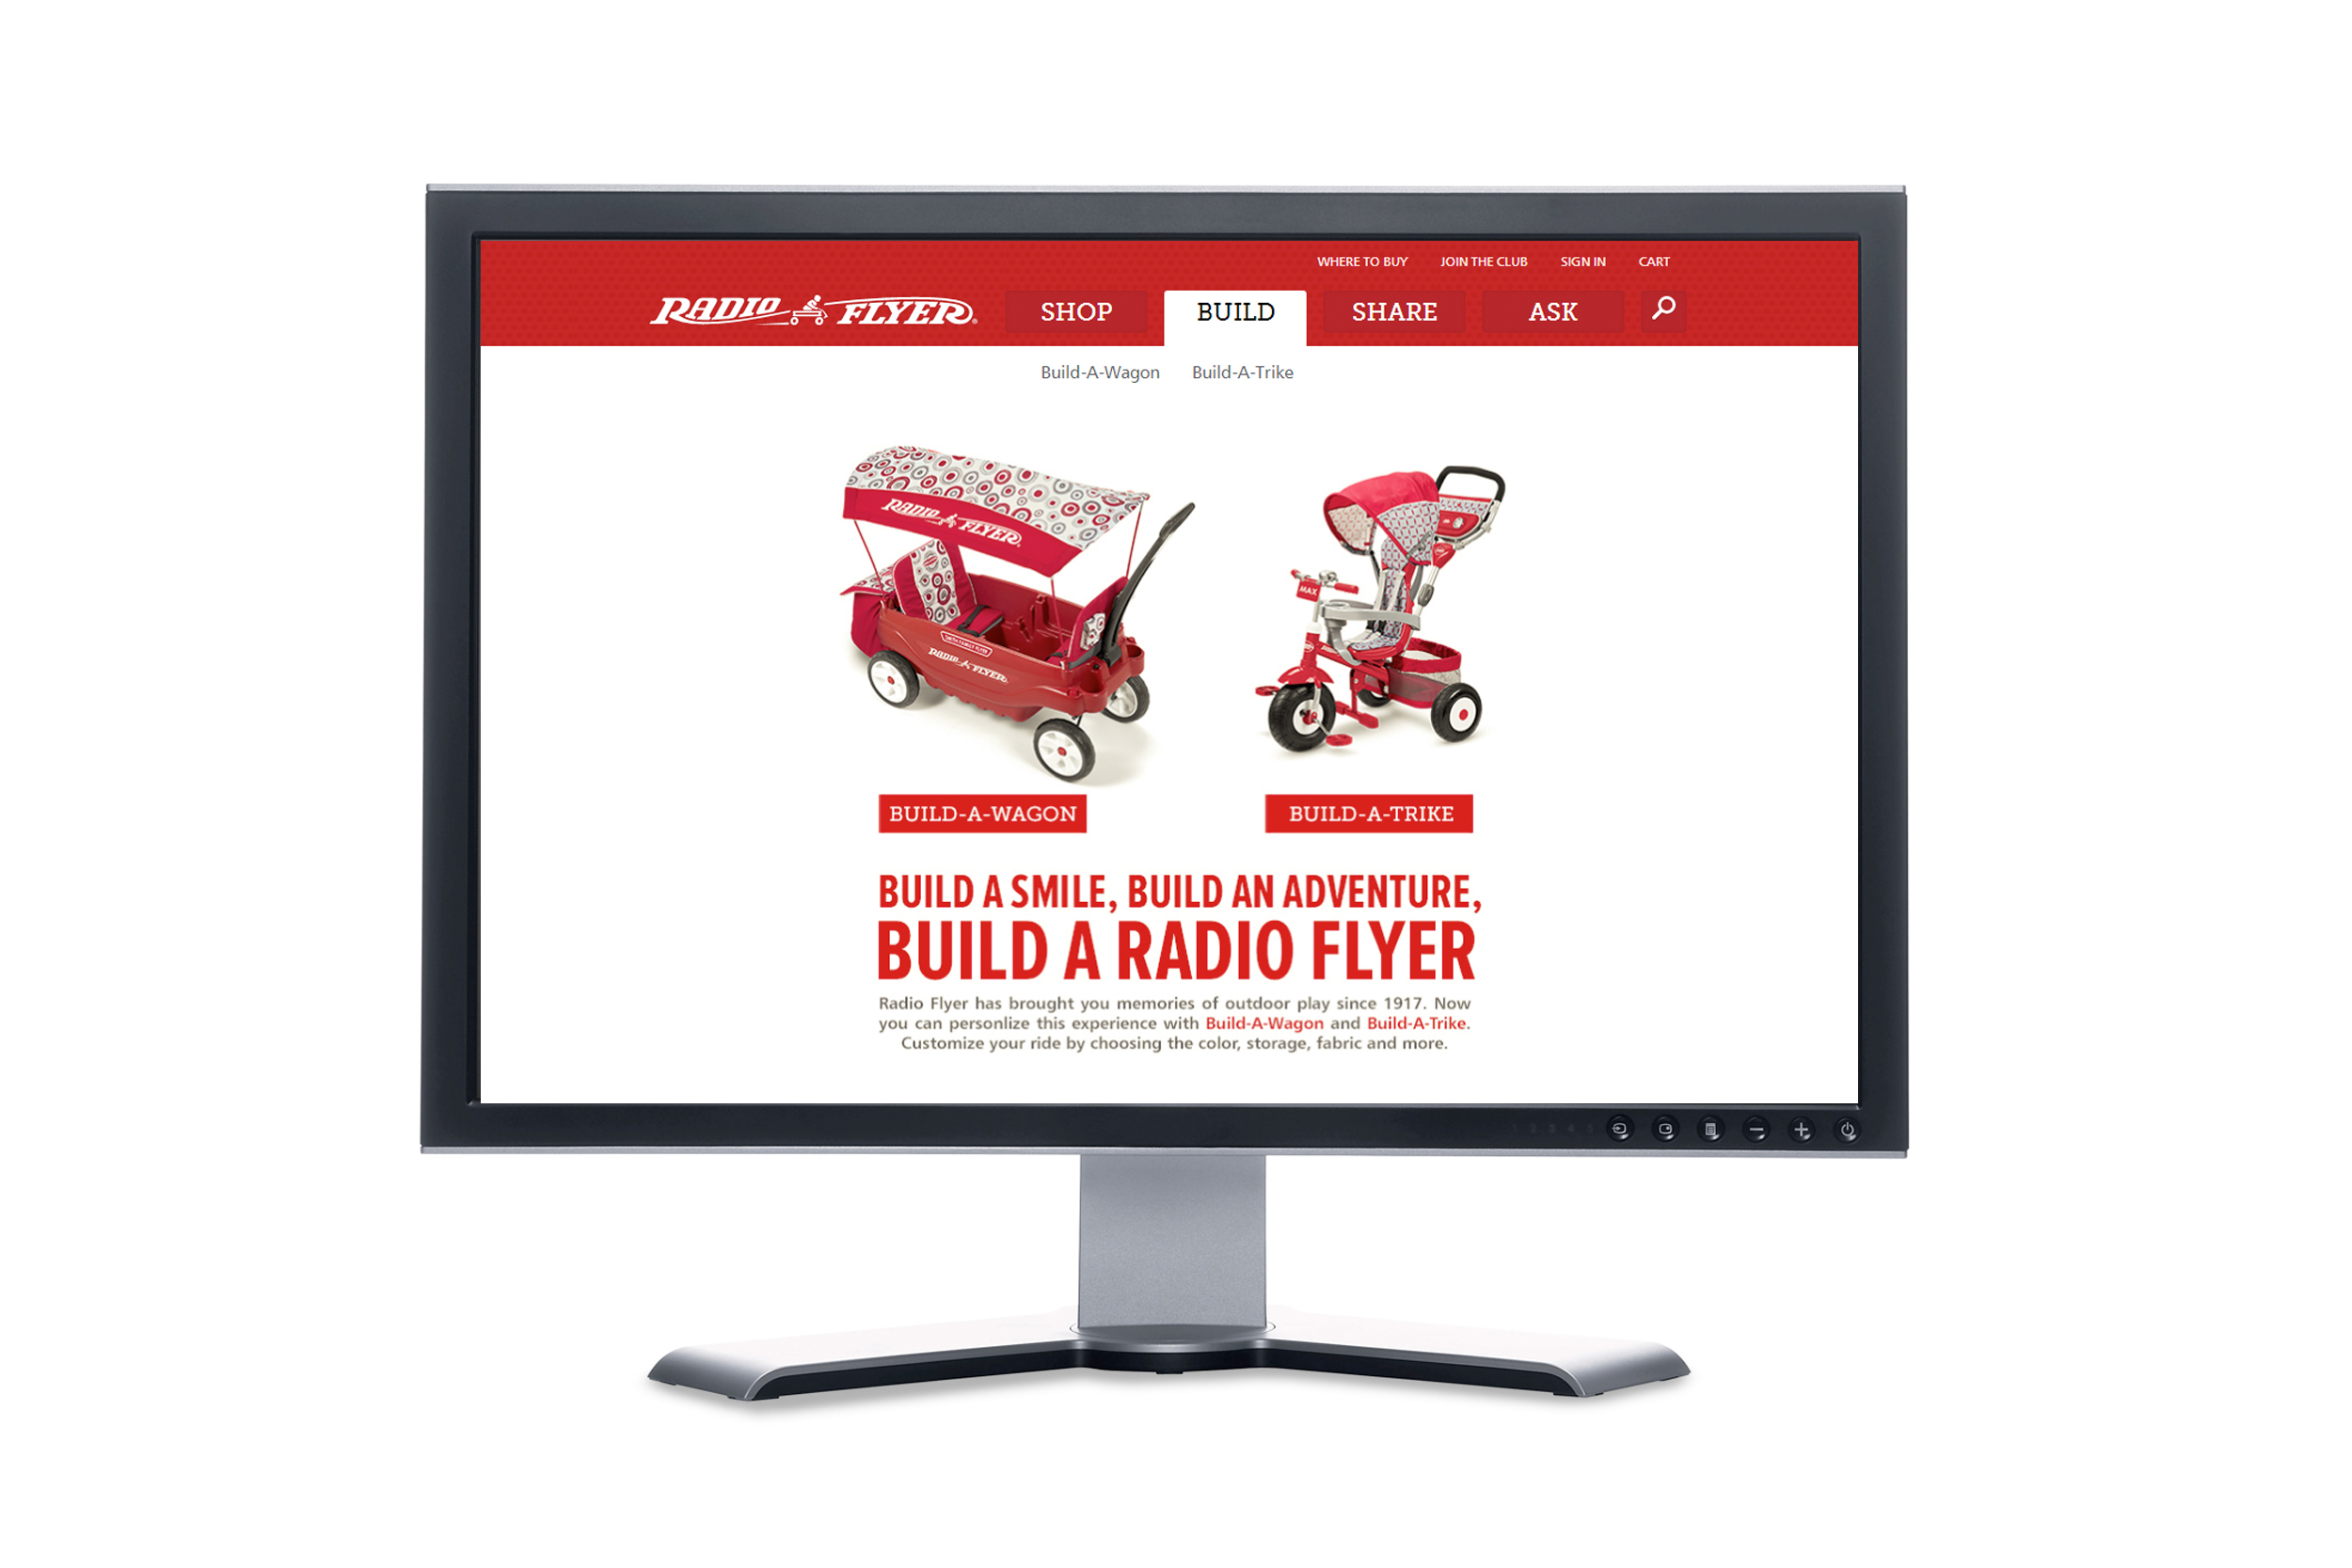 Radio Flyer Build-A-Wagon & Build-A-Trike Programs  |  Website UI